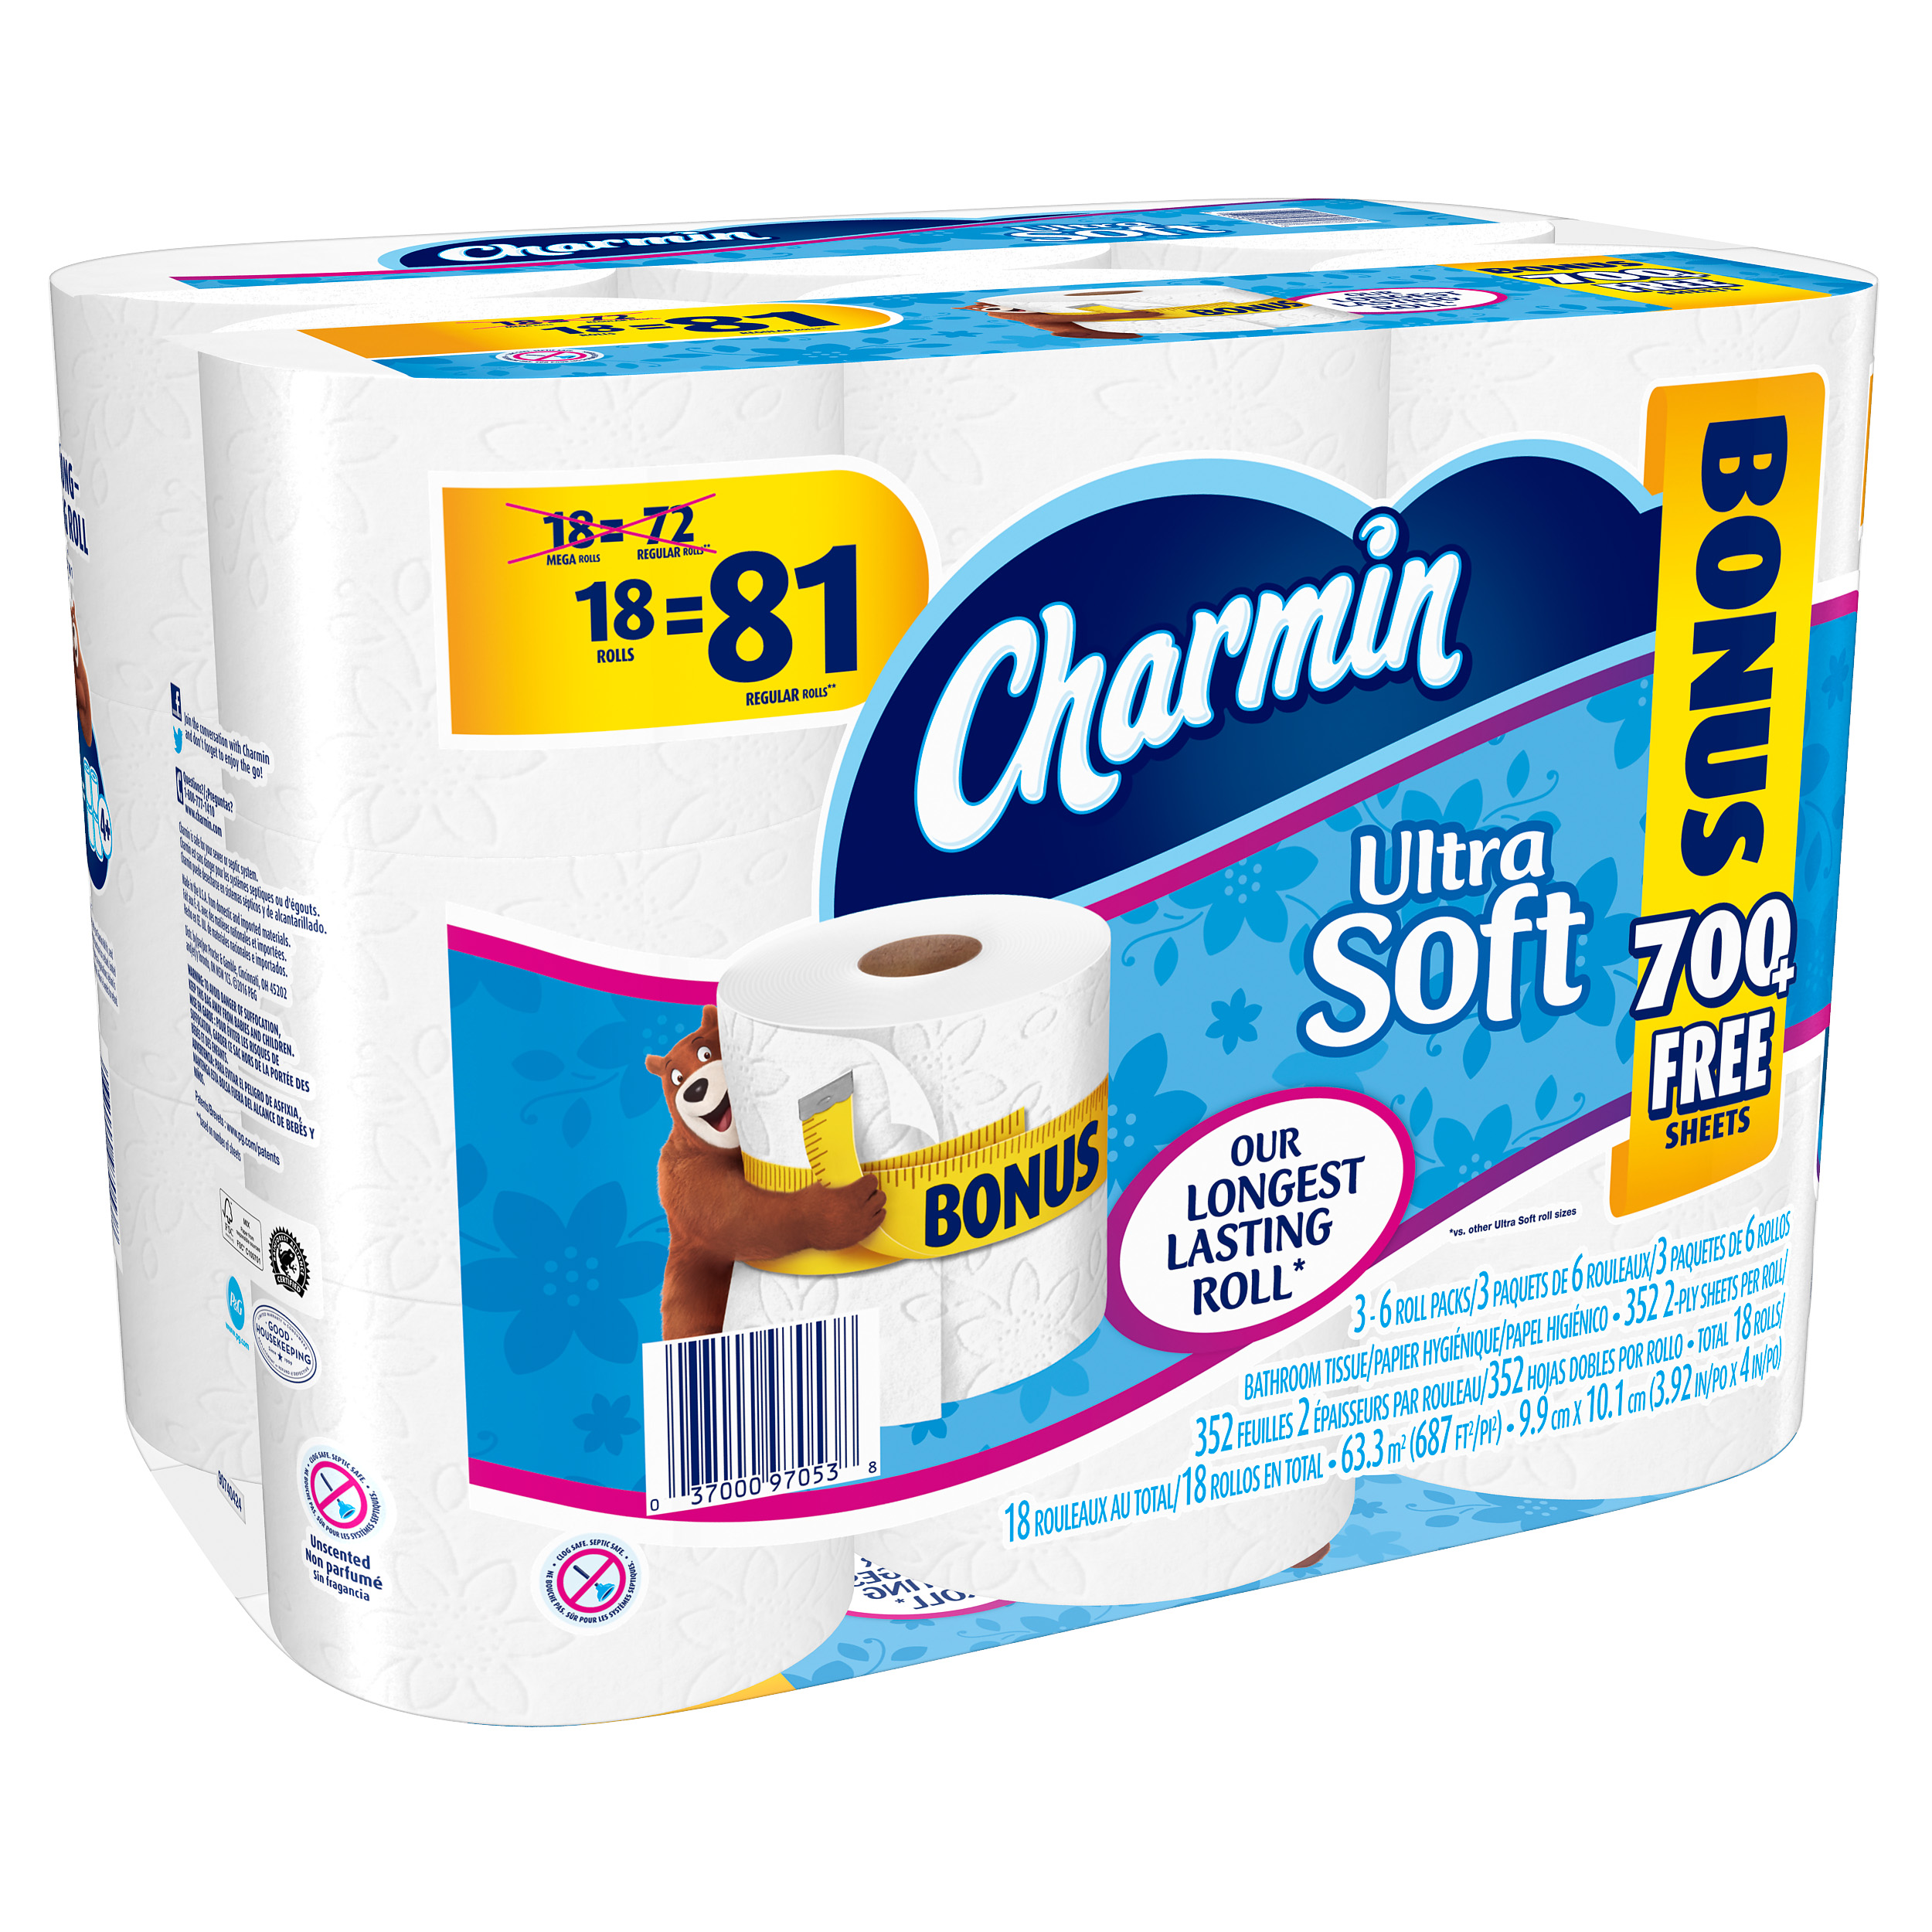 Charmin Ultra Soft Mega Roll Toilet Paper, 352 sHeets, 18 rolls by Procter & Gamble